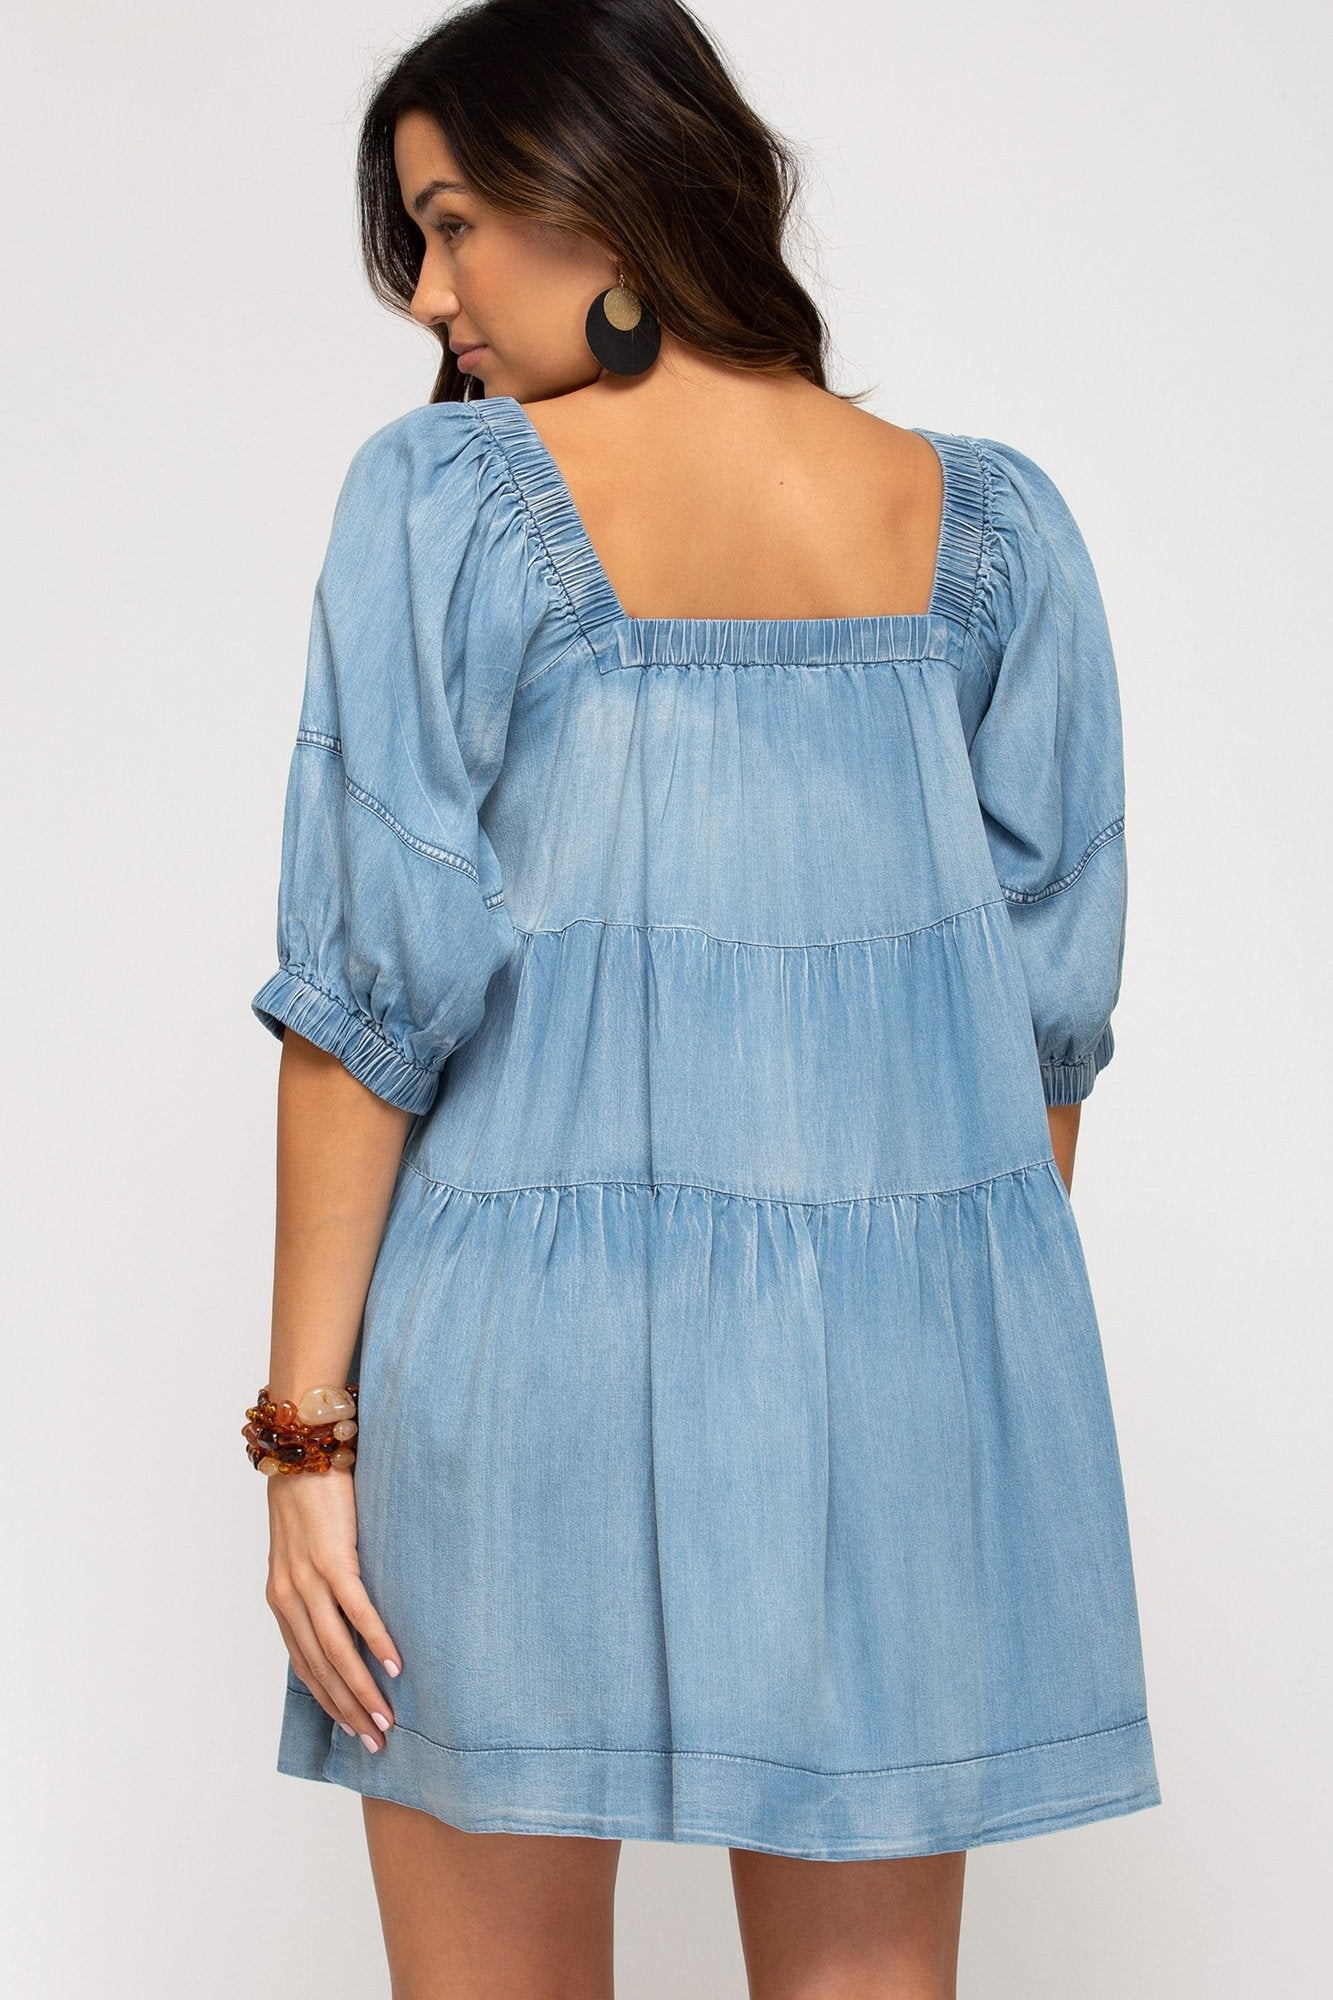 SHE AND SKY Women's Dress Half Sleeve Washed Denim Dress || David's Clothing